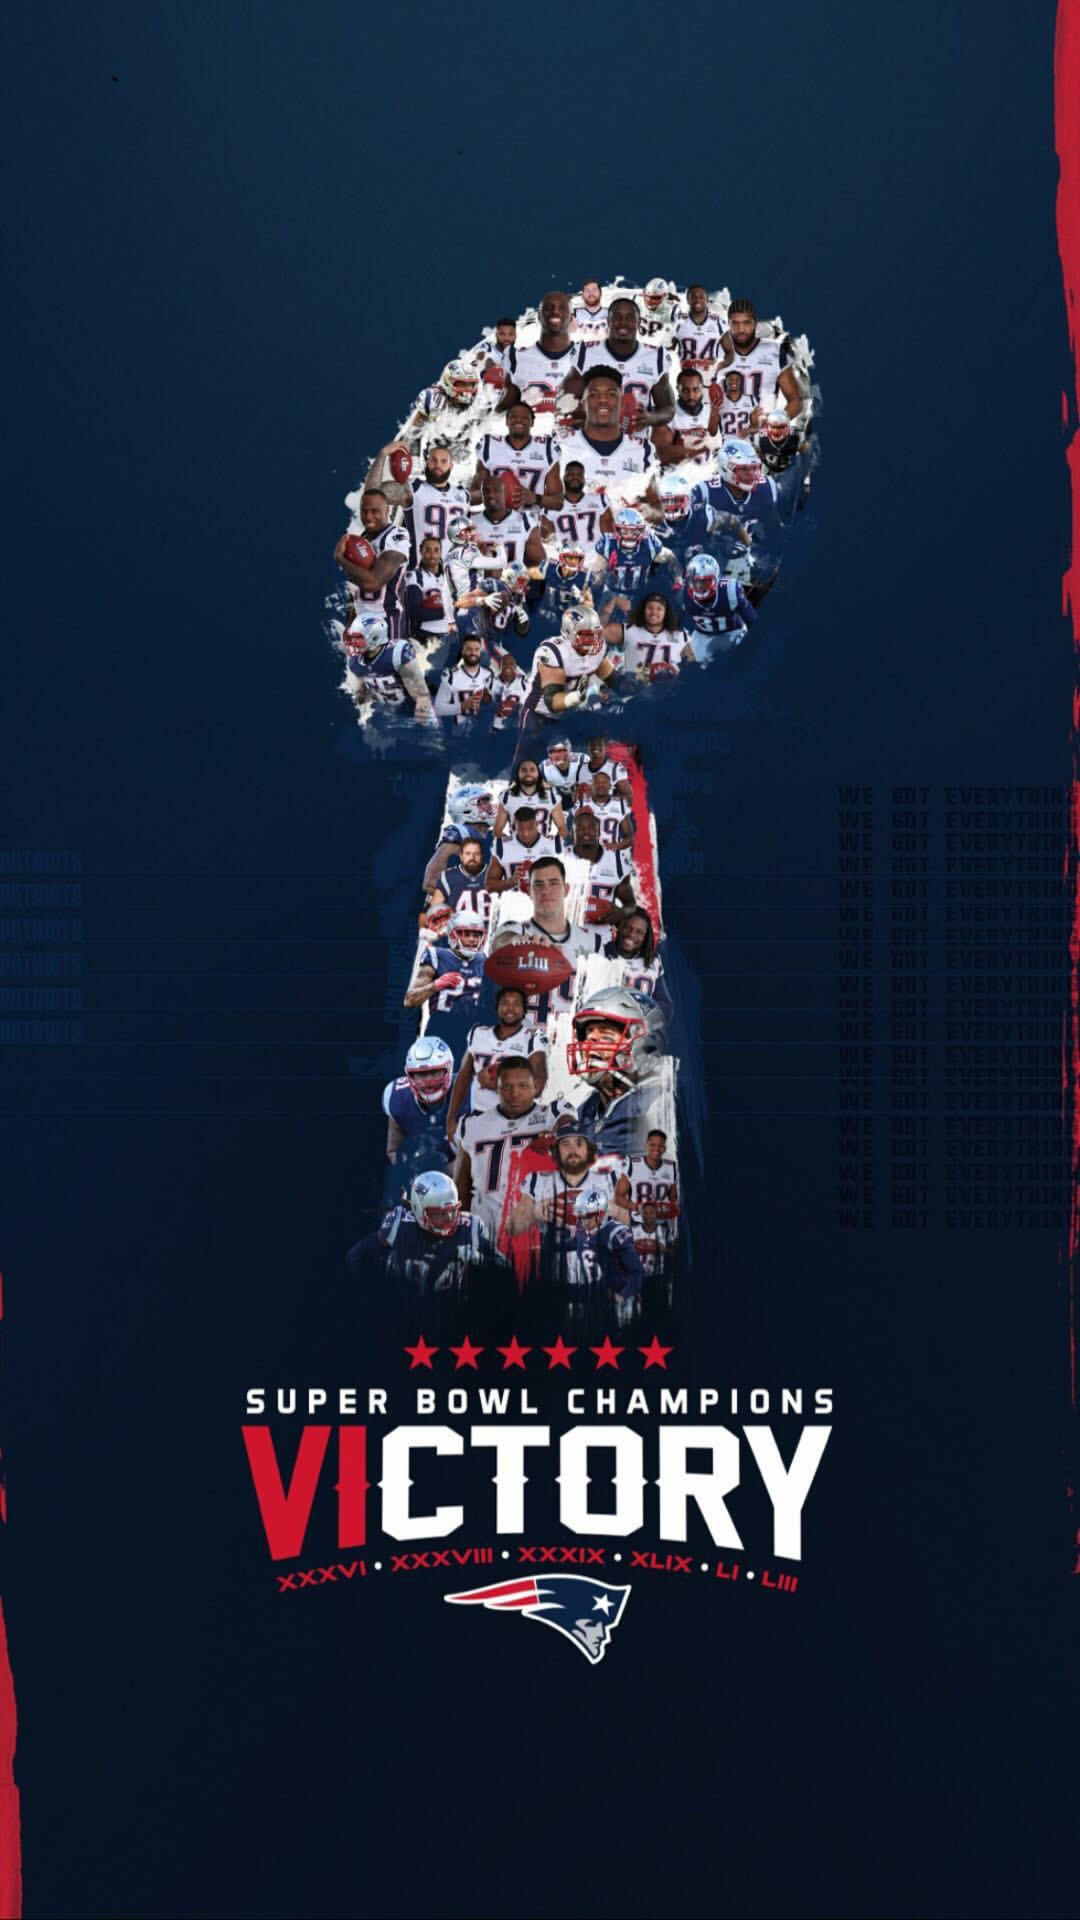 Awesome phone wallpaper from the Pats Instagram account Patriots 1080x1920